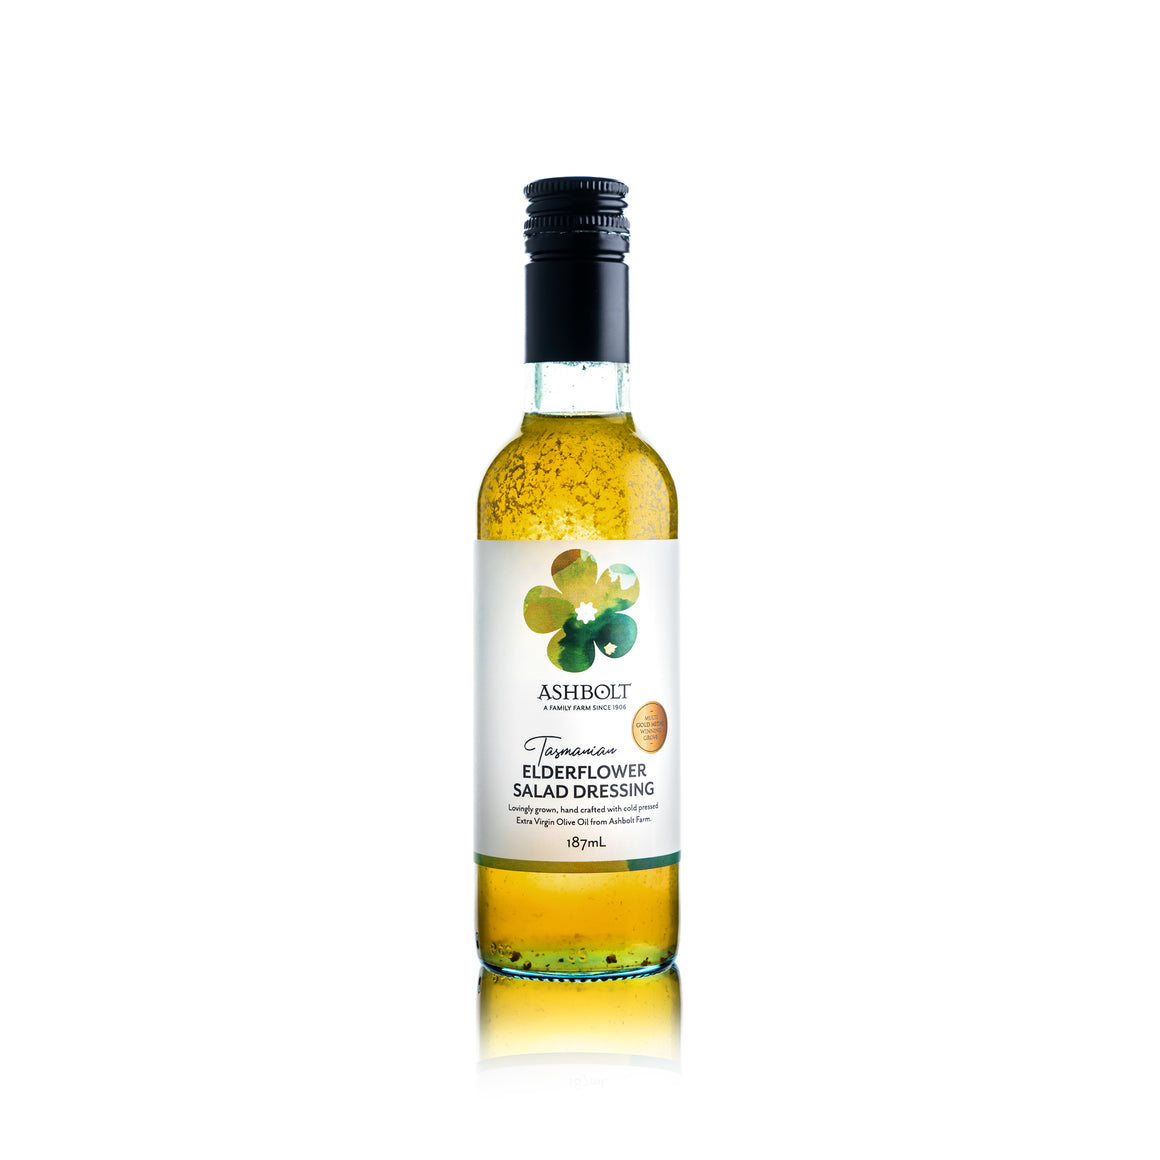 Elderflower Salad Dressing